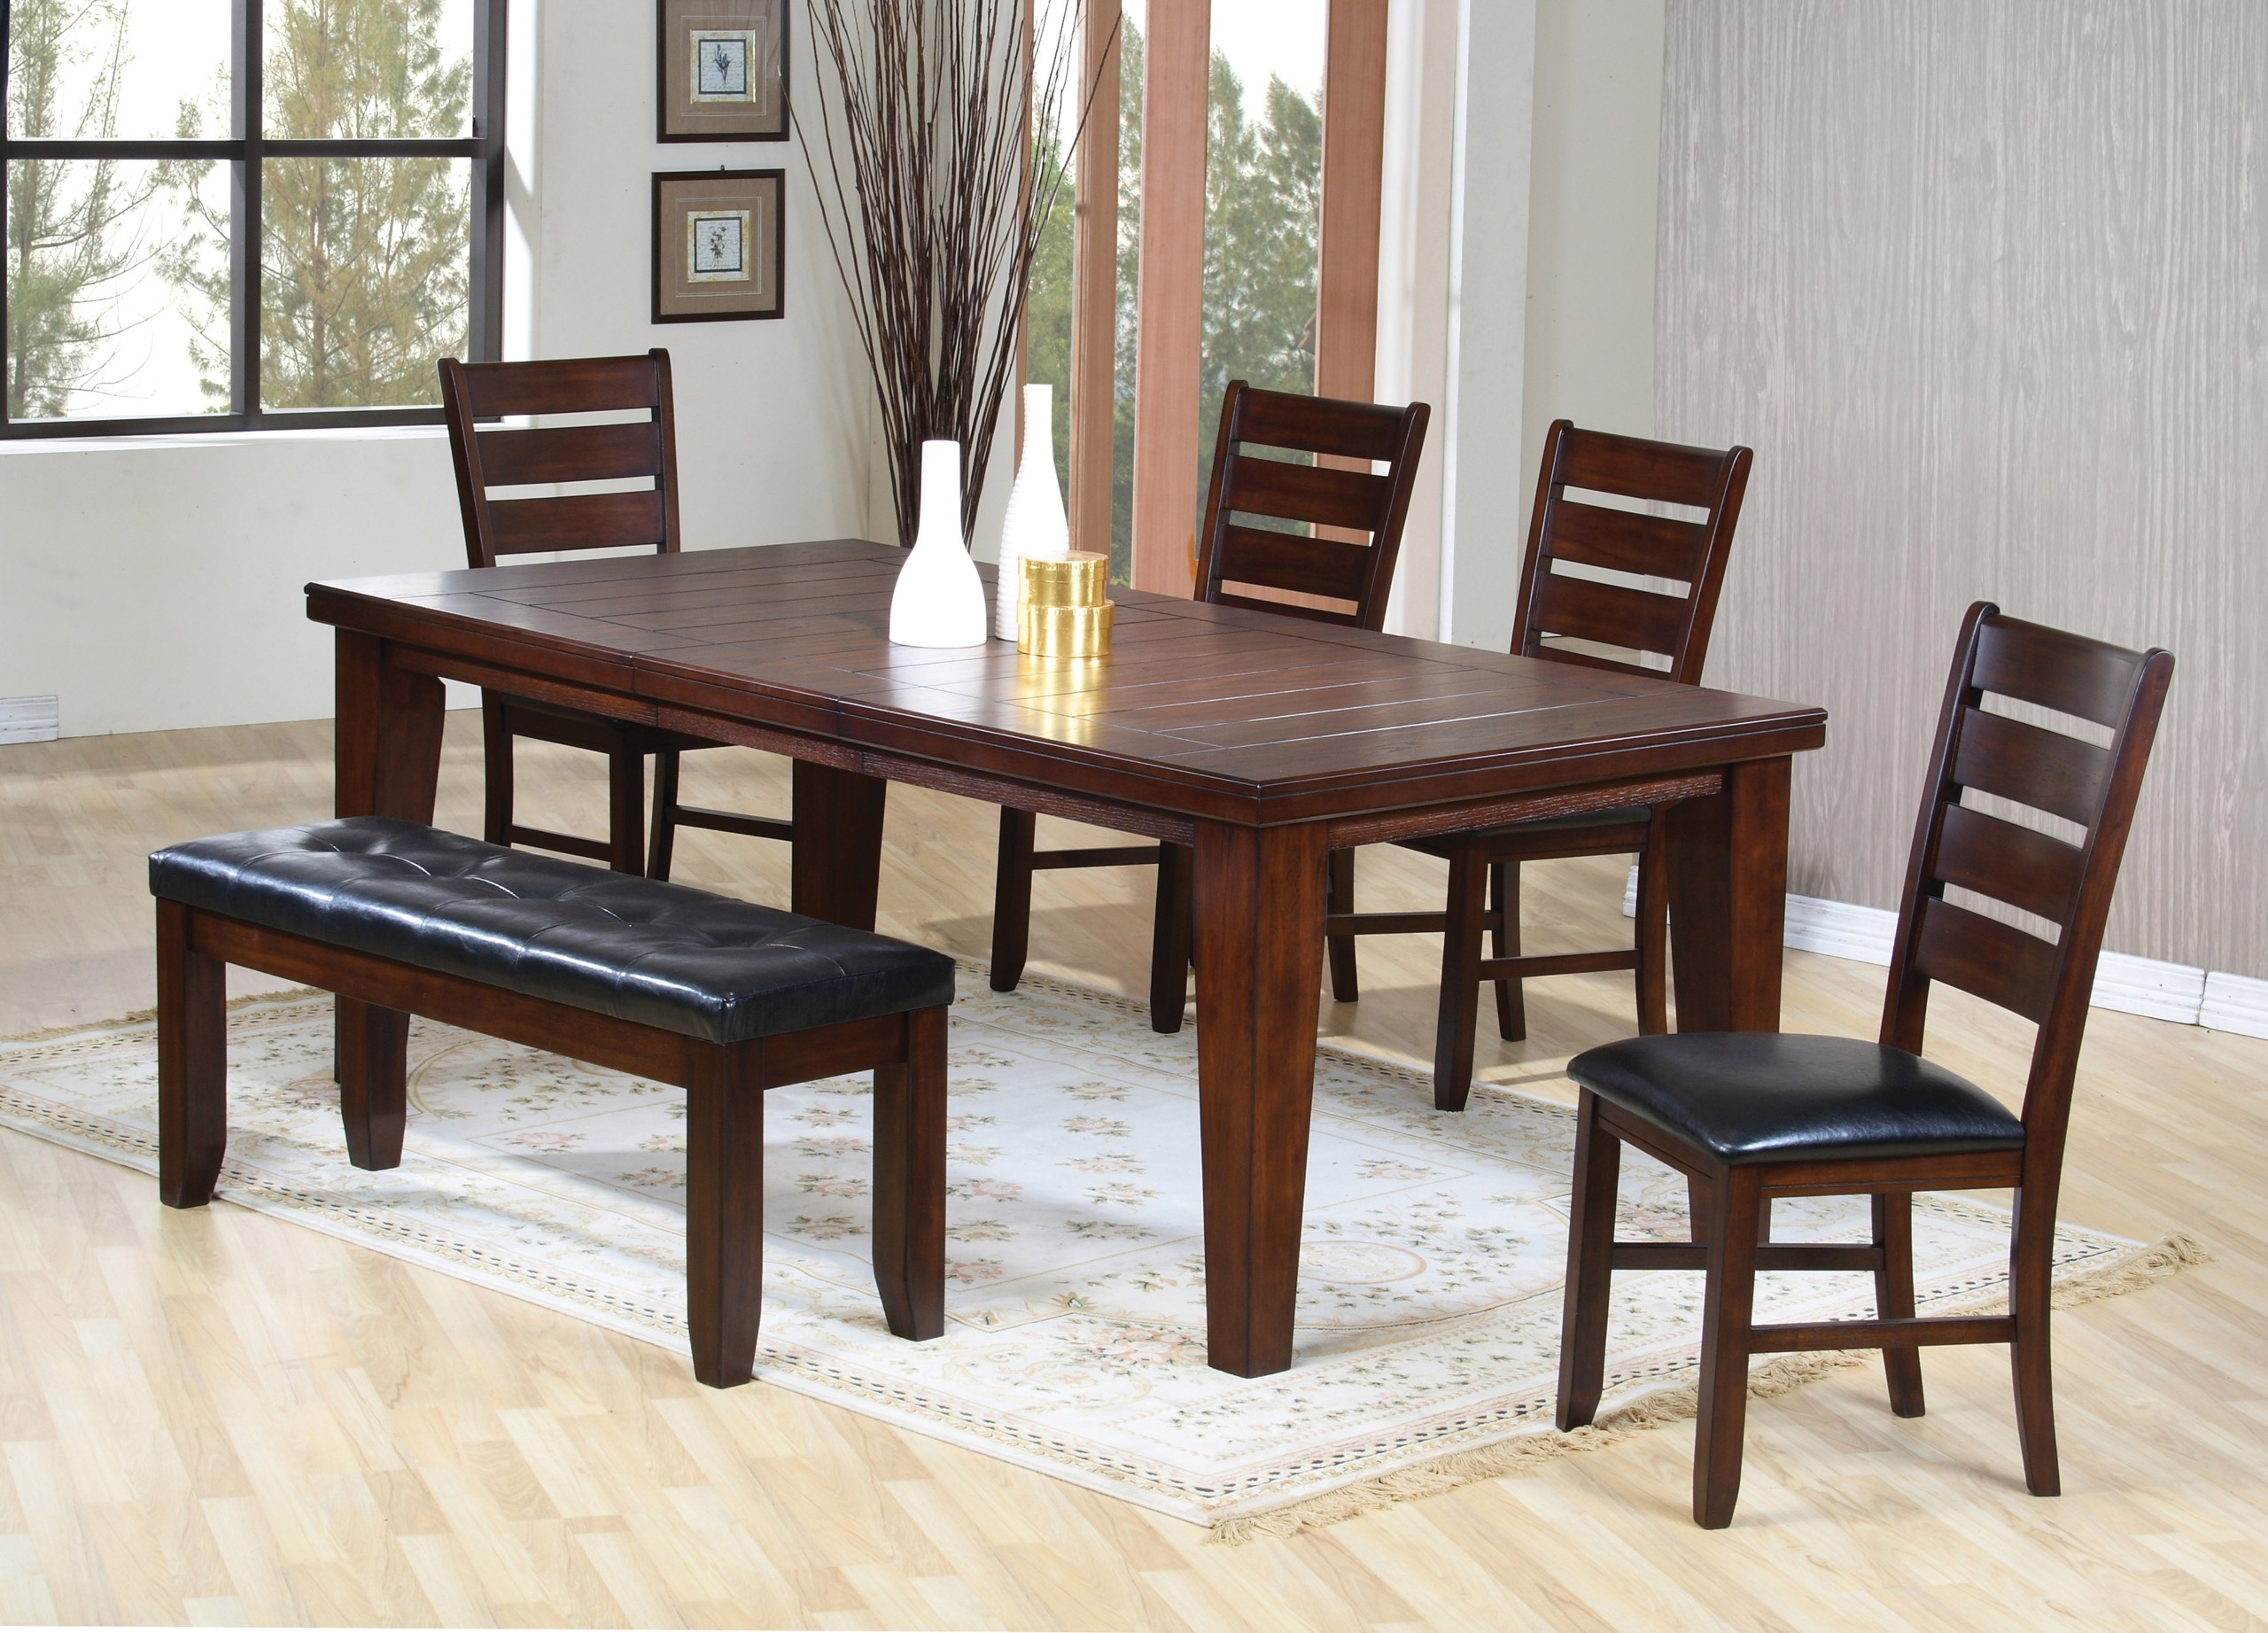 6pc Dining Table u0026 Chairs Set with Ladder Back Dark Oak Finish & Dining Table With Chairs And Bench - Foter